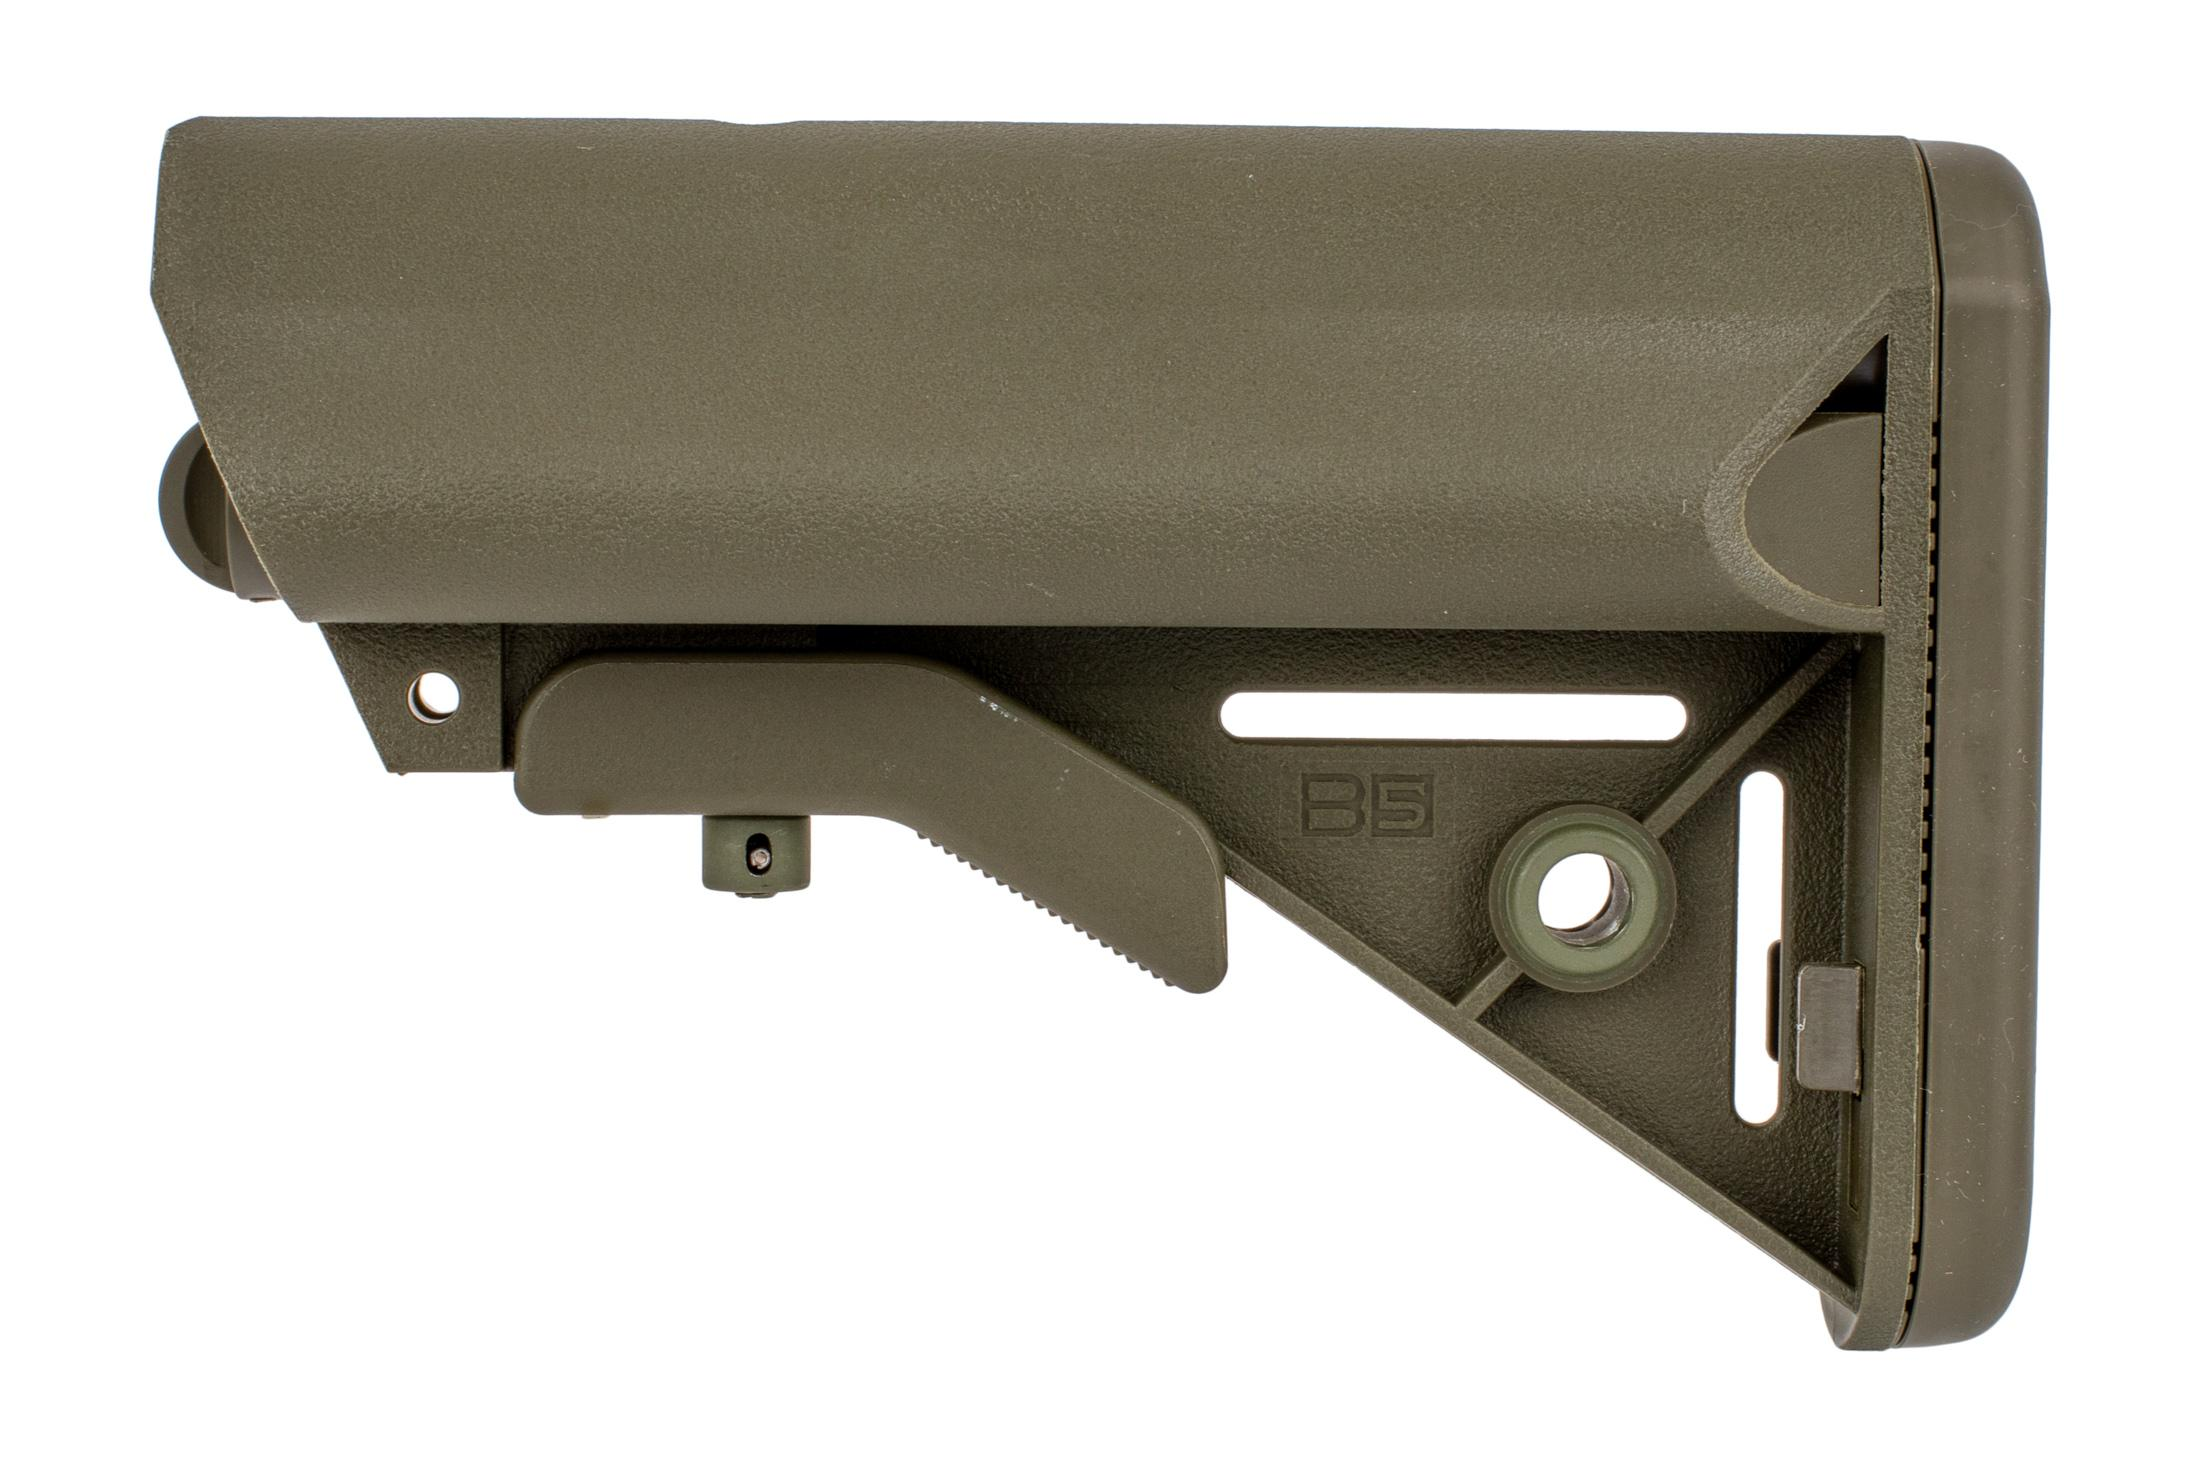 B5 Systems ENHANCED SOPMOD stock fits MIL-SPEC buffer tubes with a wide cheek weld and OD Green finish